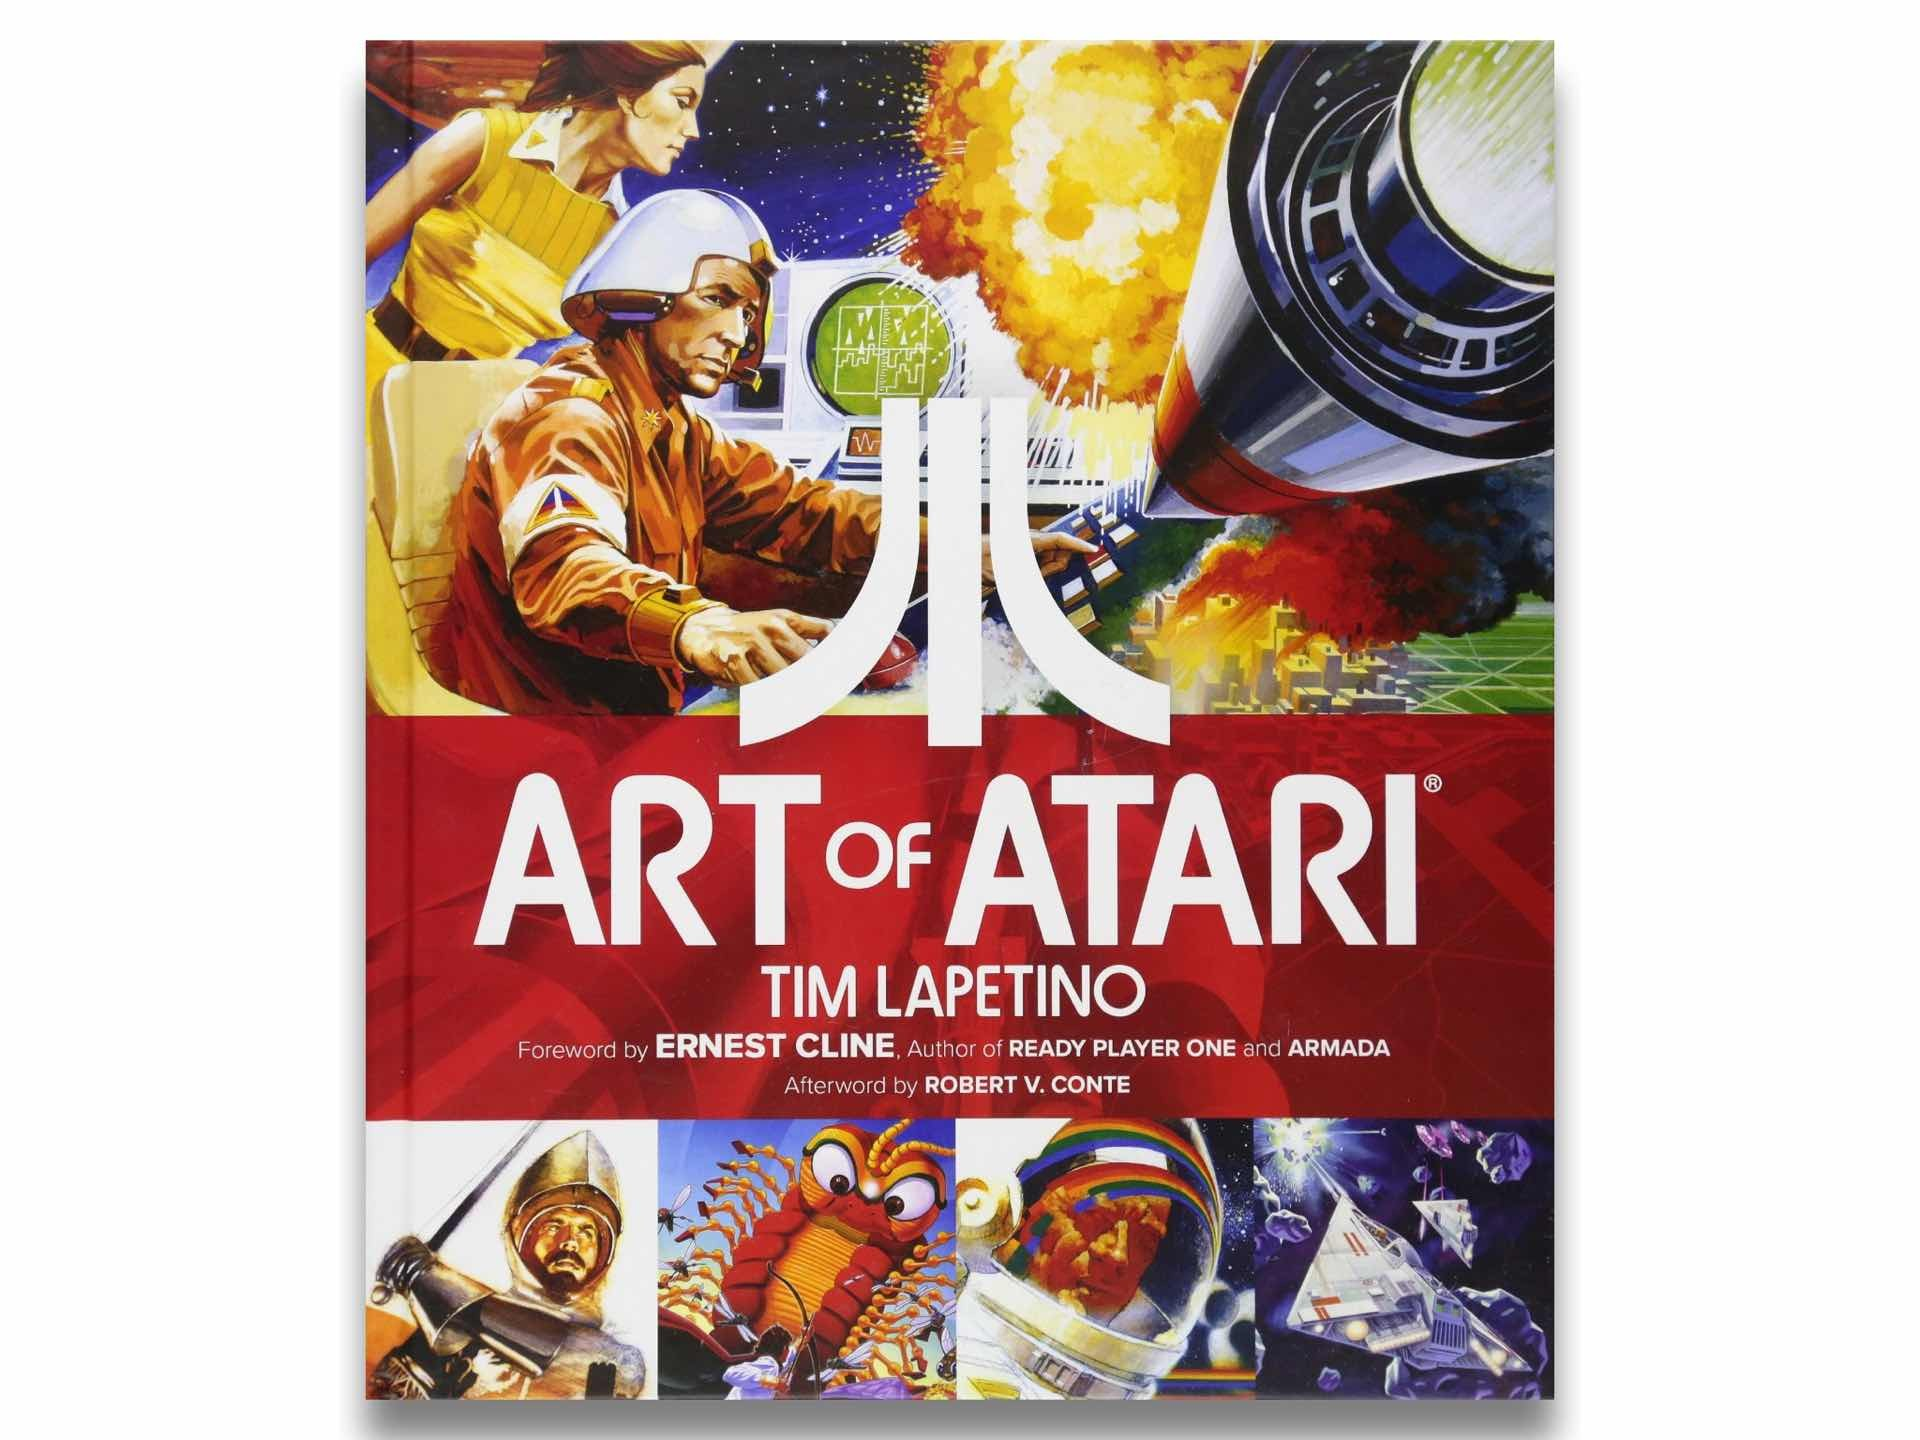 Art of Atari by Tim Lapetino.